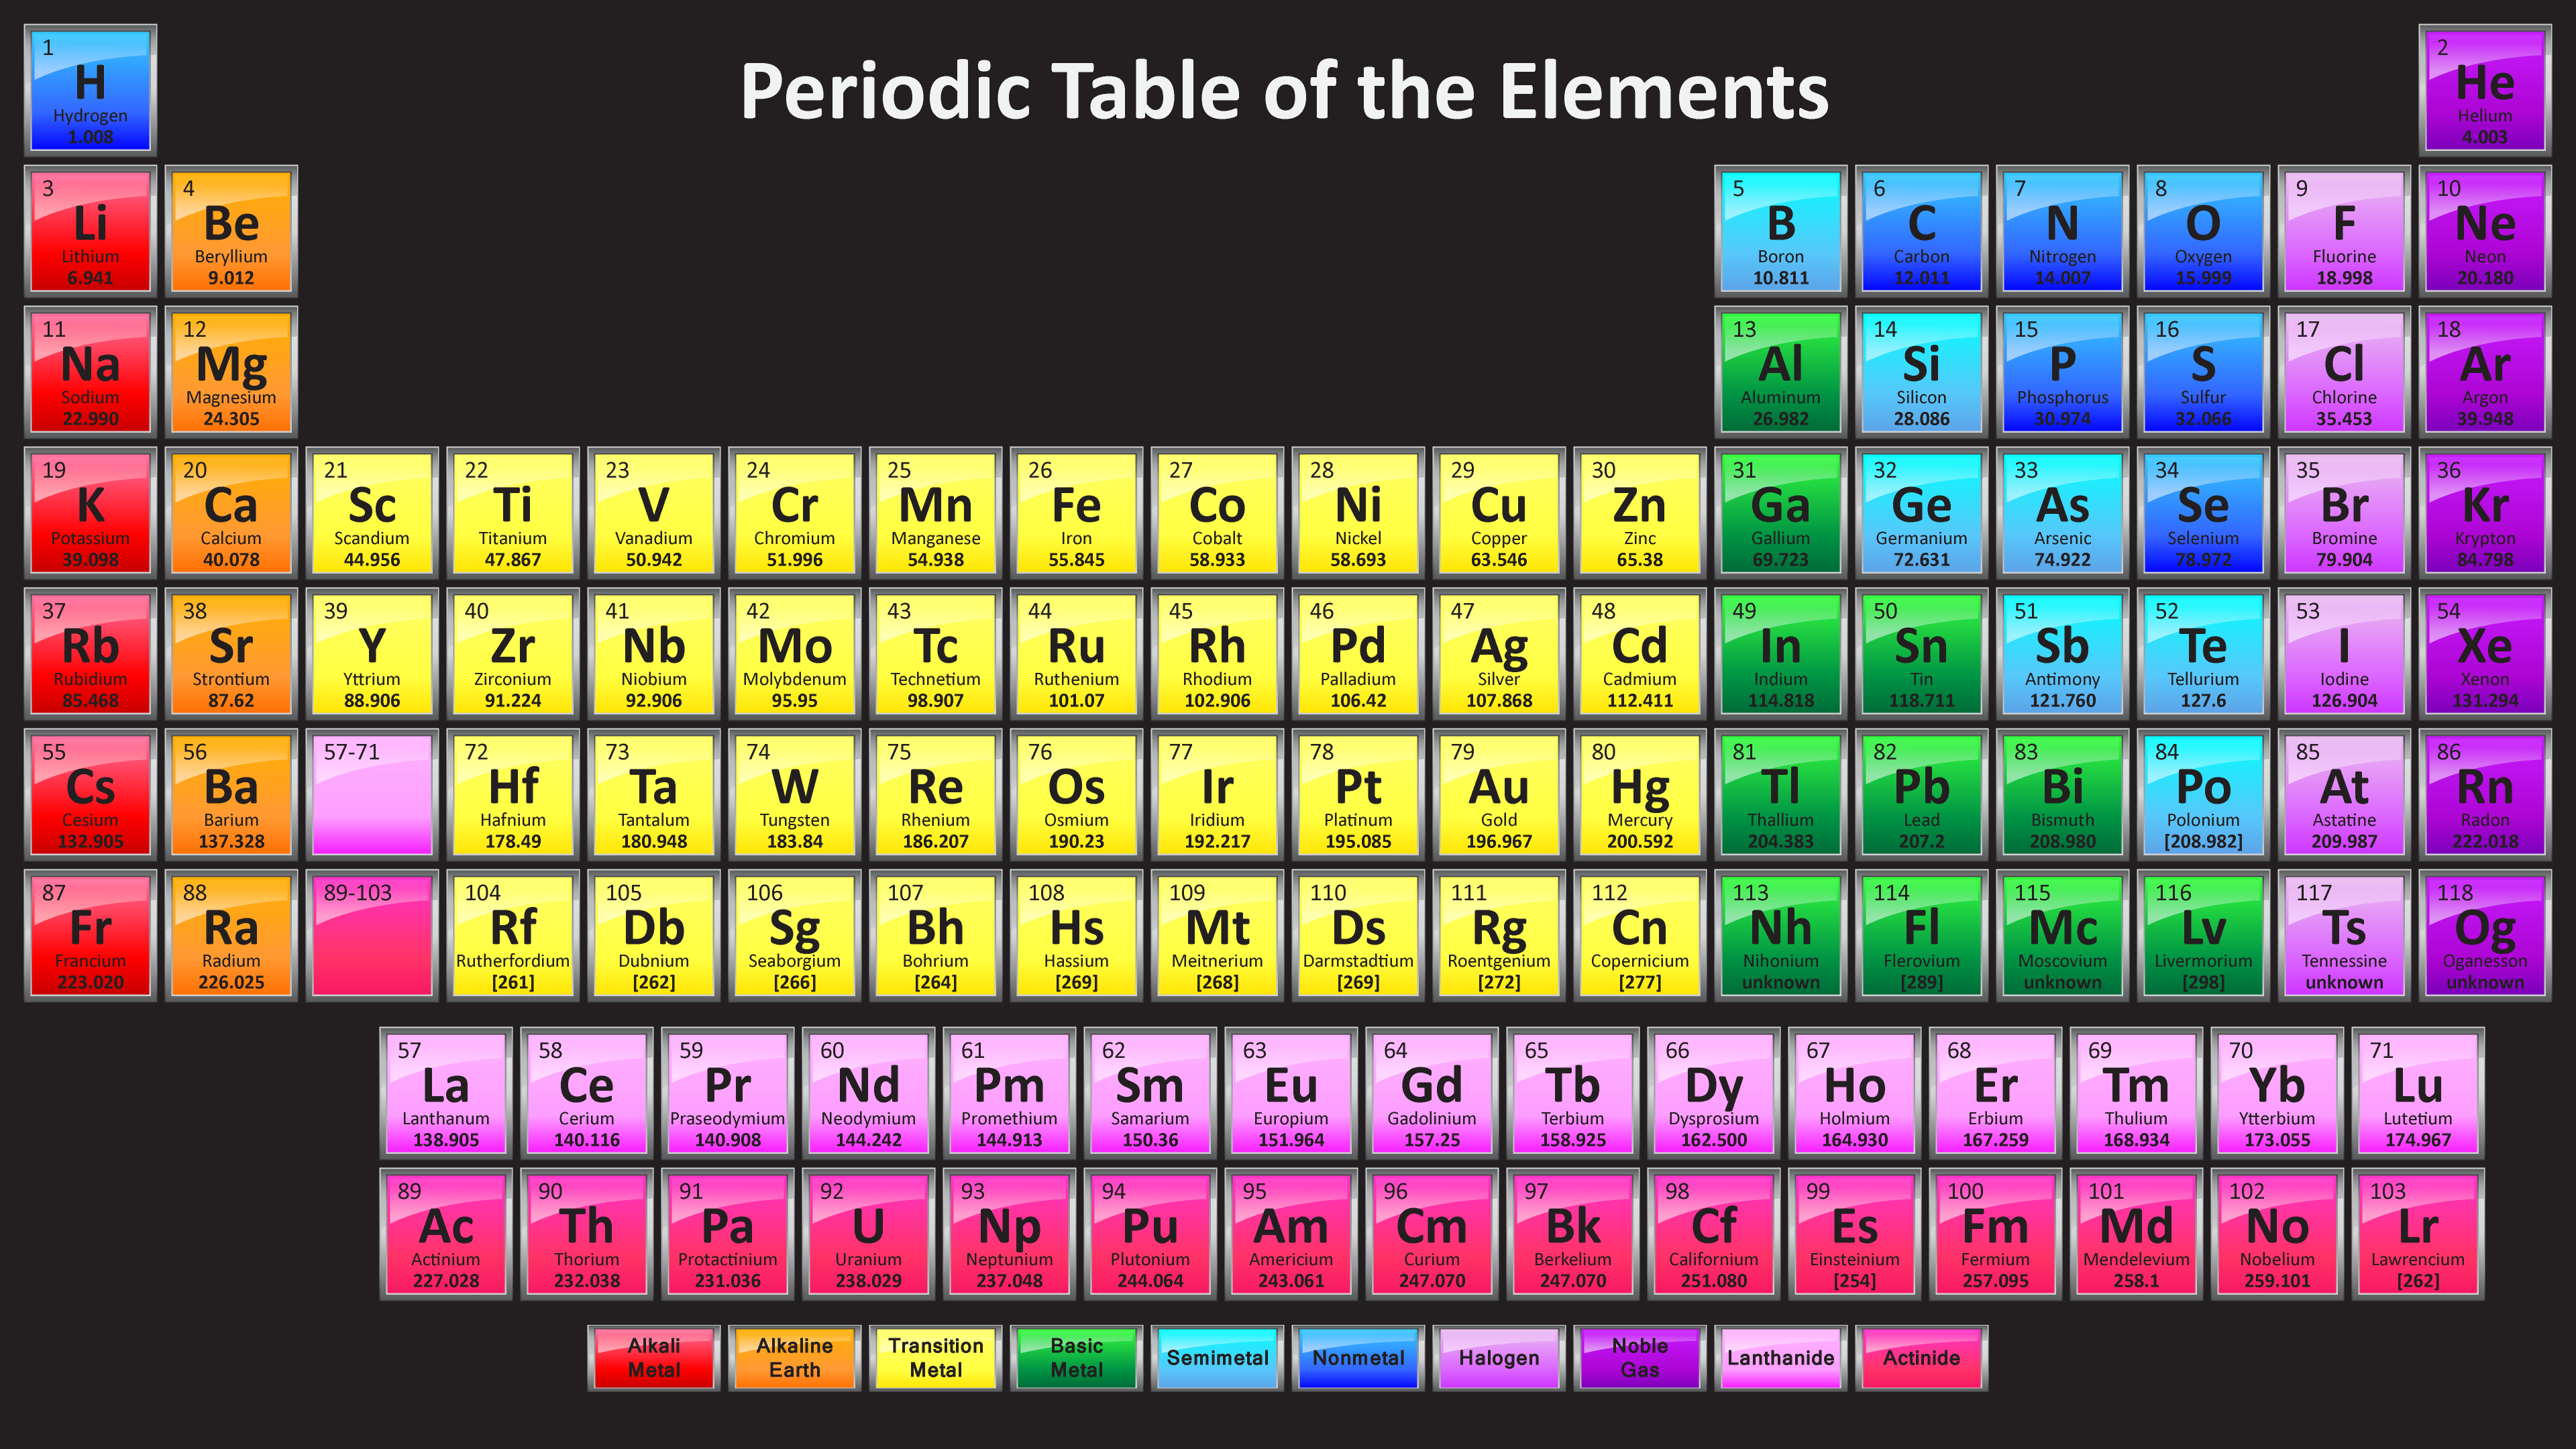 Periodic table of the elements containing all 118 elements including ...